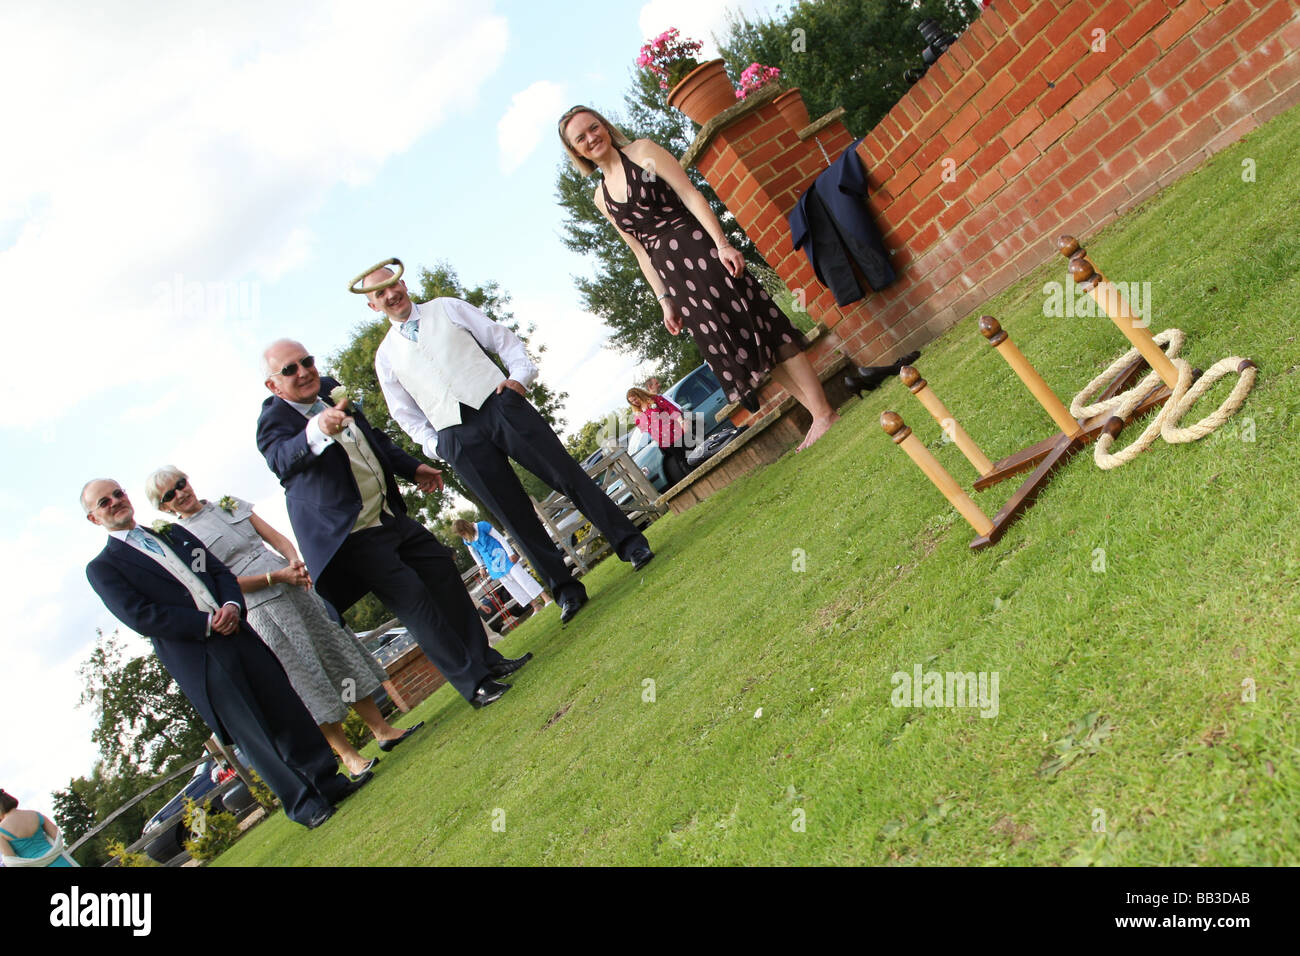 Wedding guests outside playing hoops game at reception - Stock Image